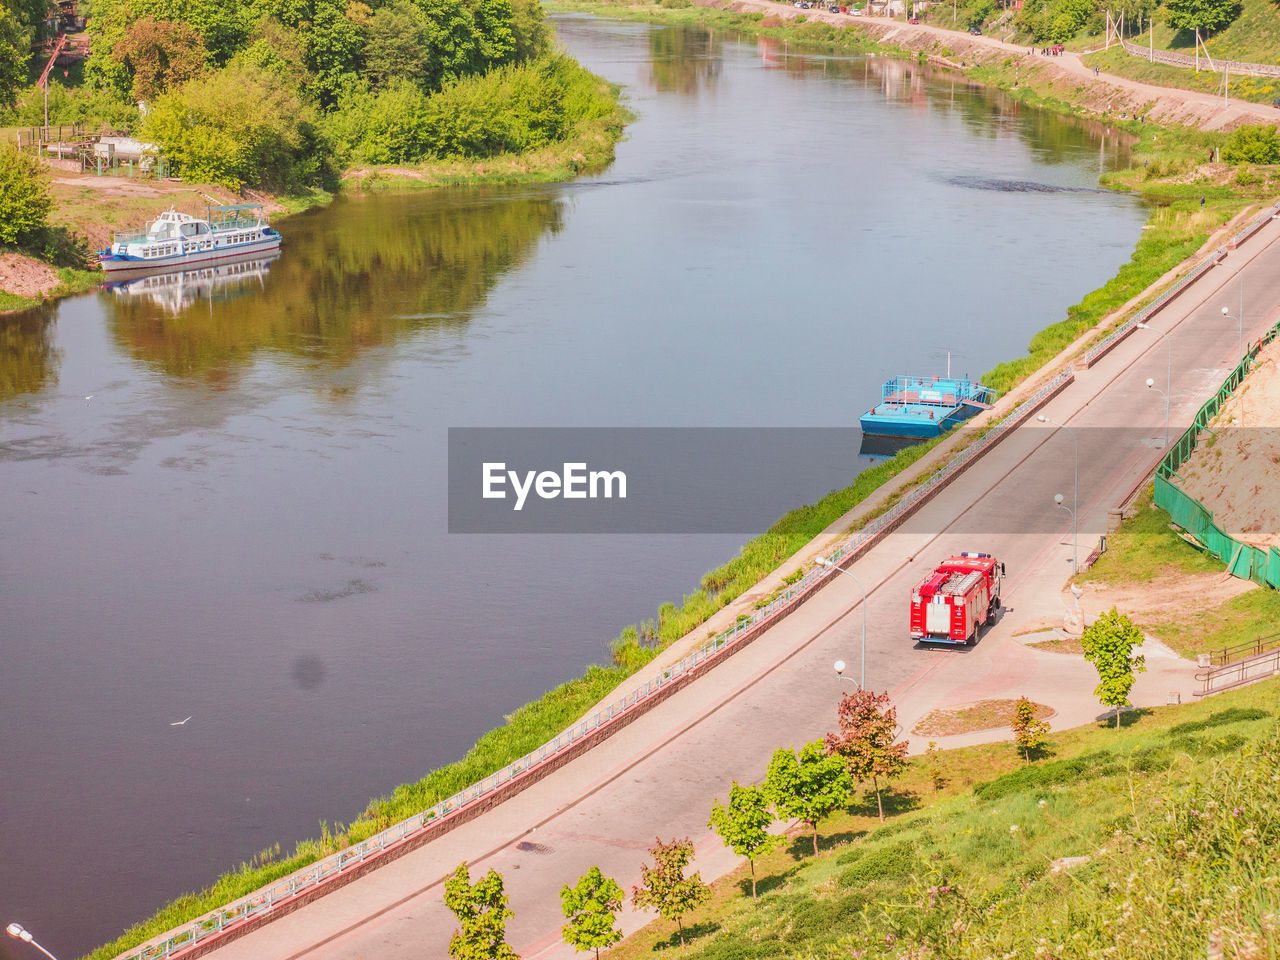 water, high angle view, transportation, day, plant, nature, mode of transportation, tree, no people, architecture, outdoors, built structure, river, nautical vessel, road, reflection, city, building exterior, beauty in nature